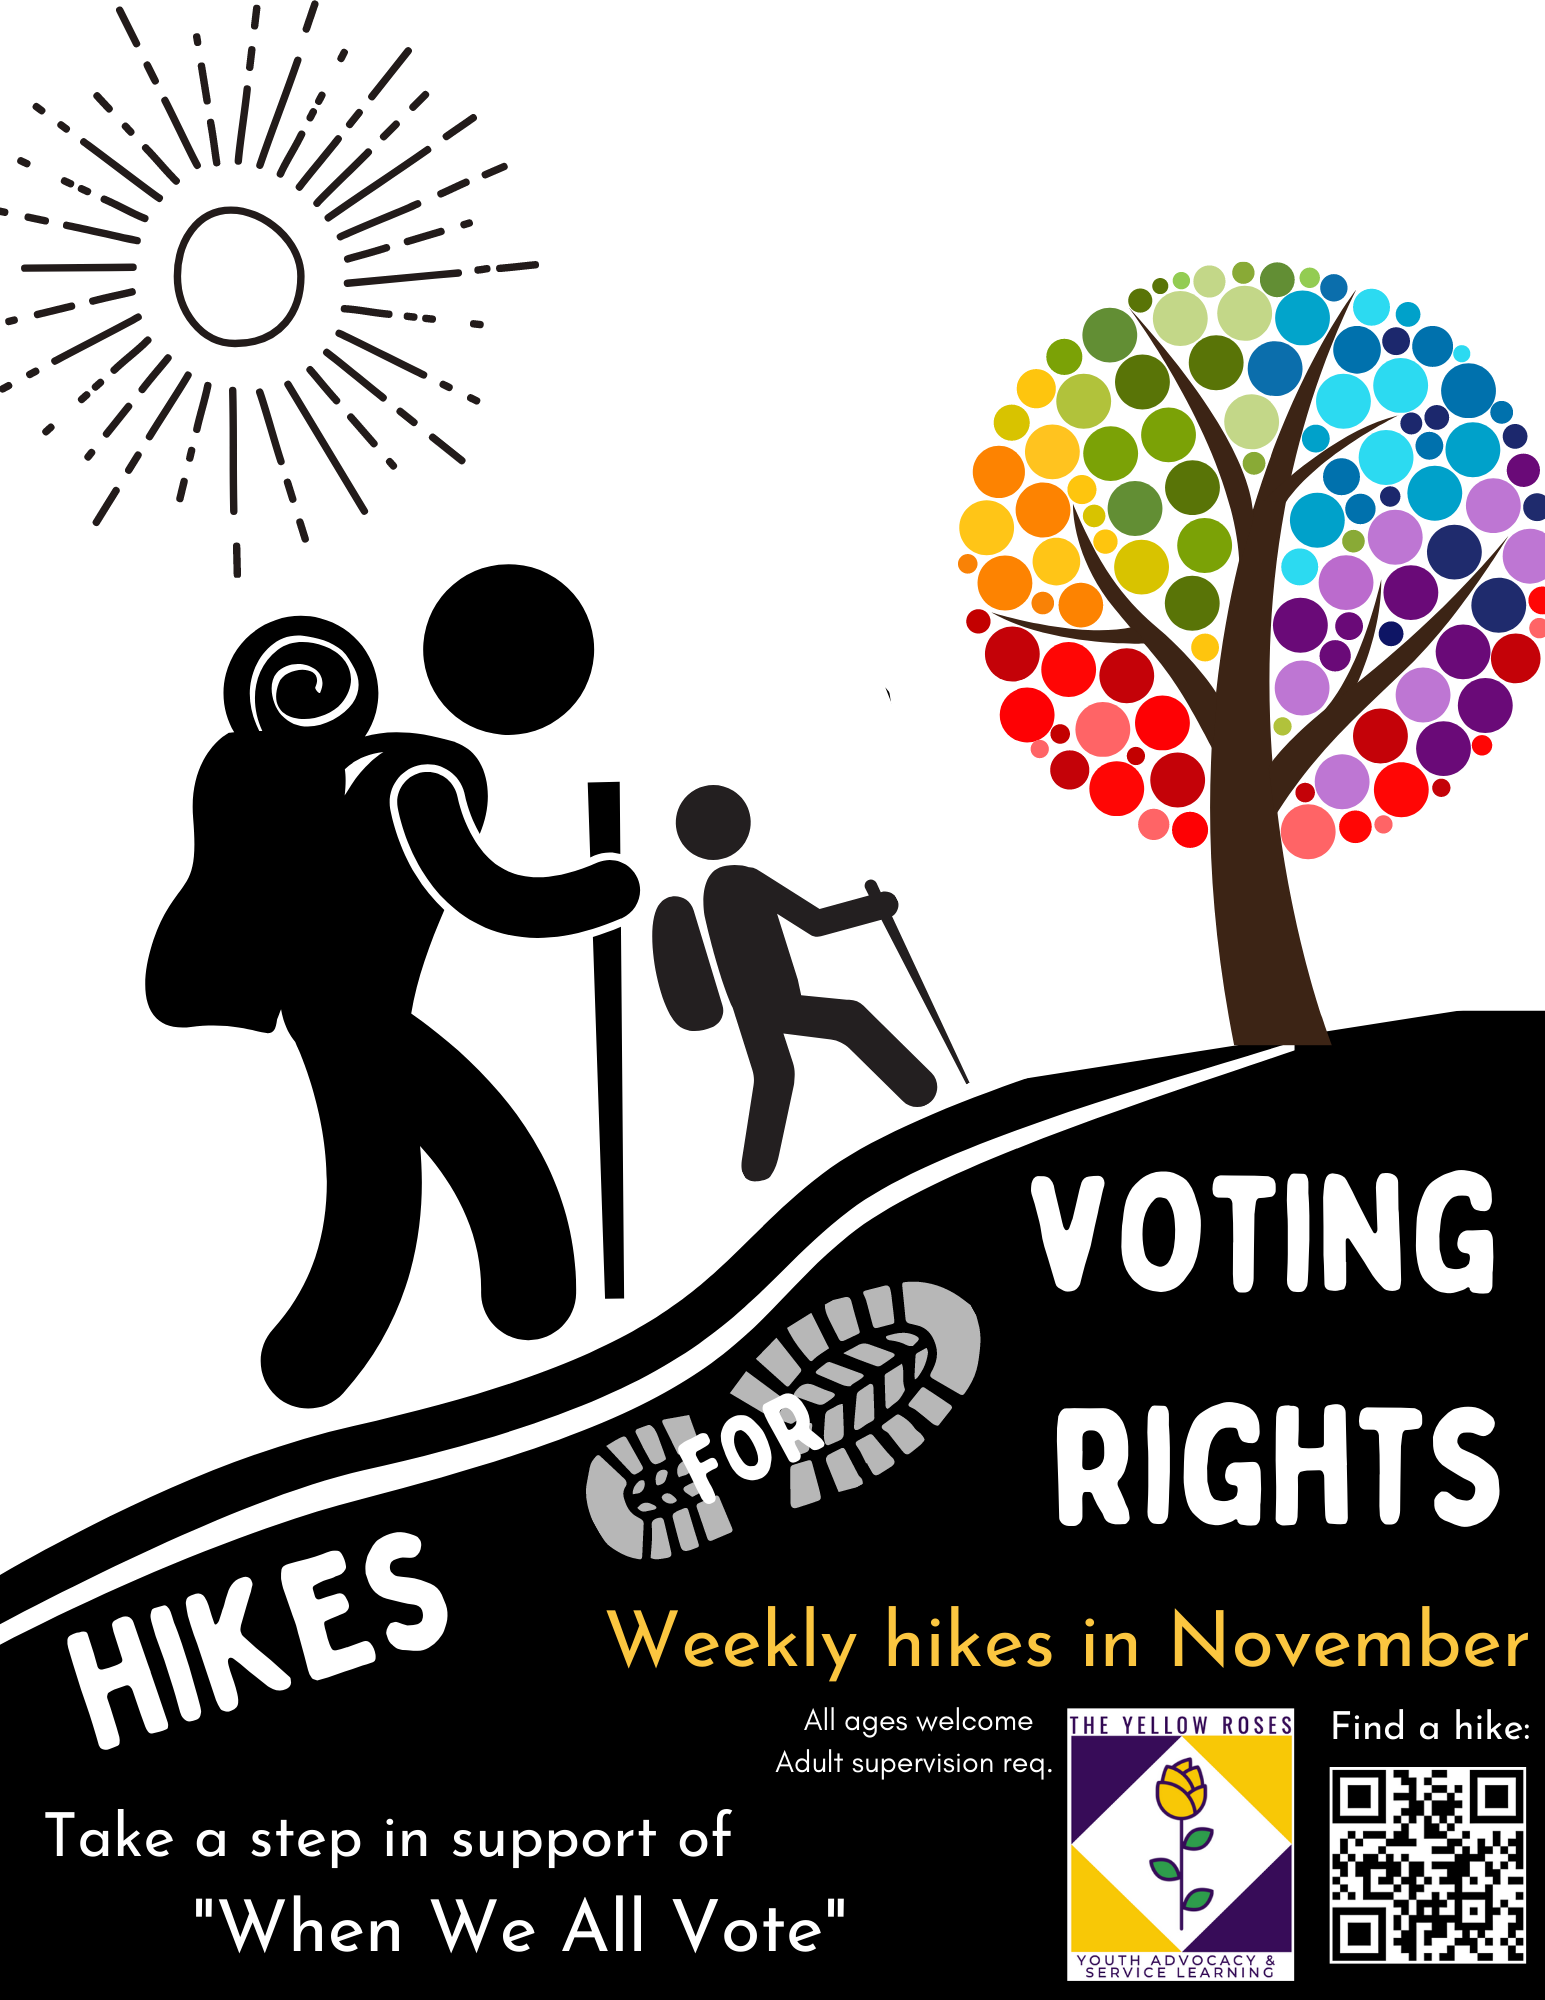 Hikes for Voting Rights